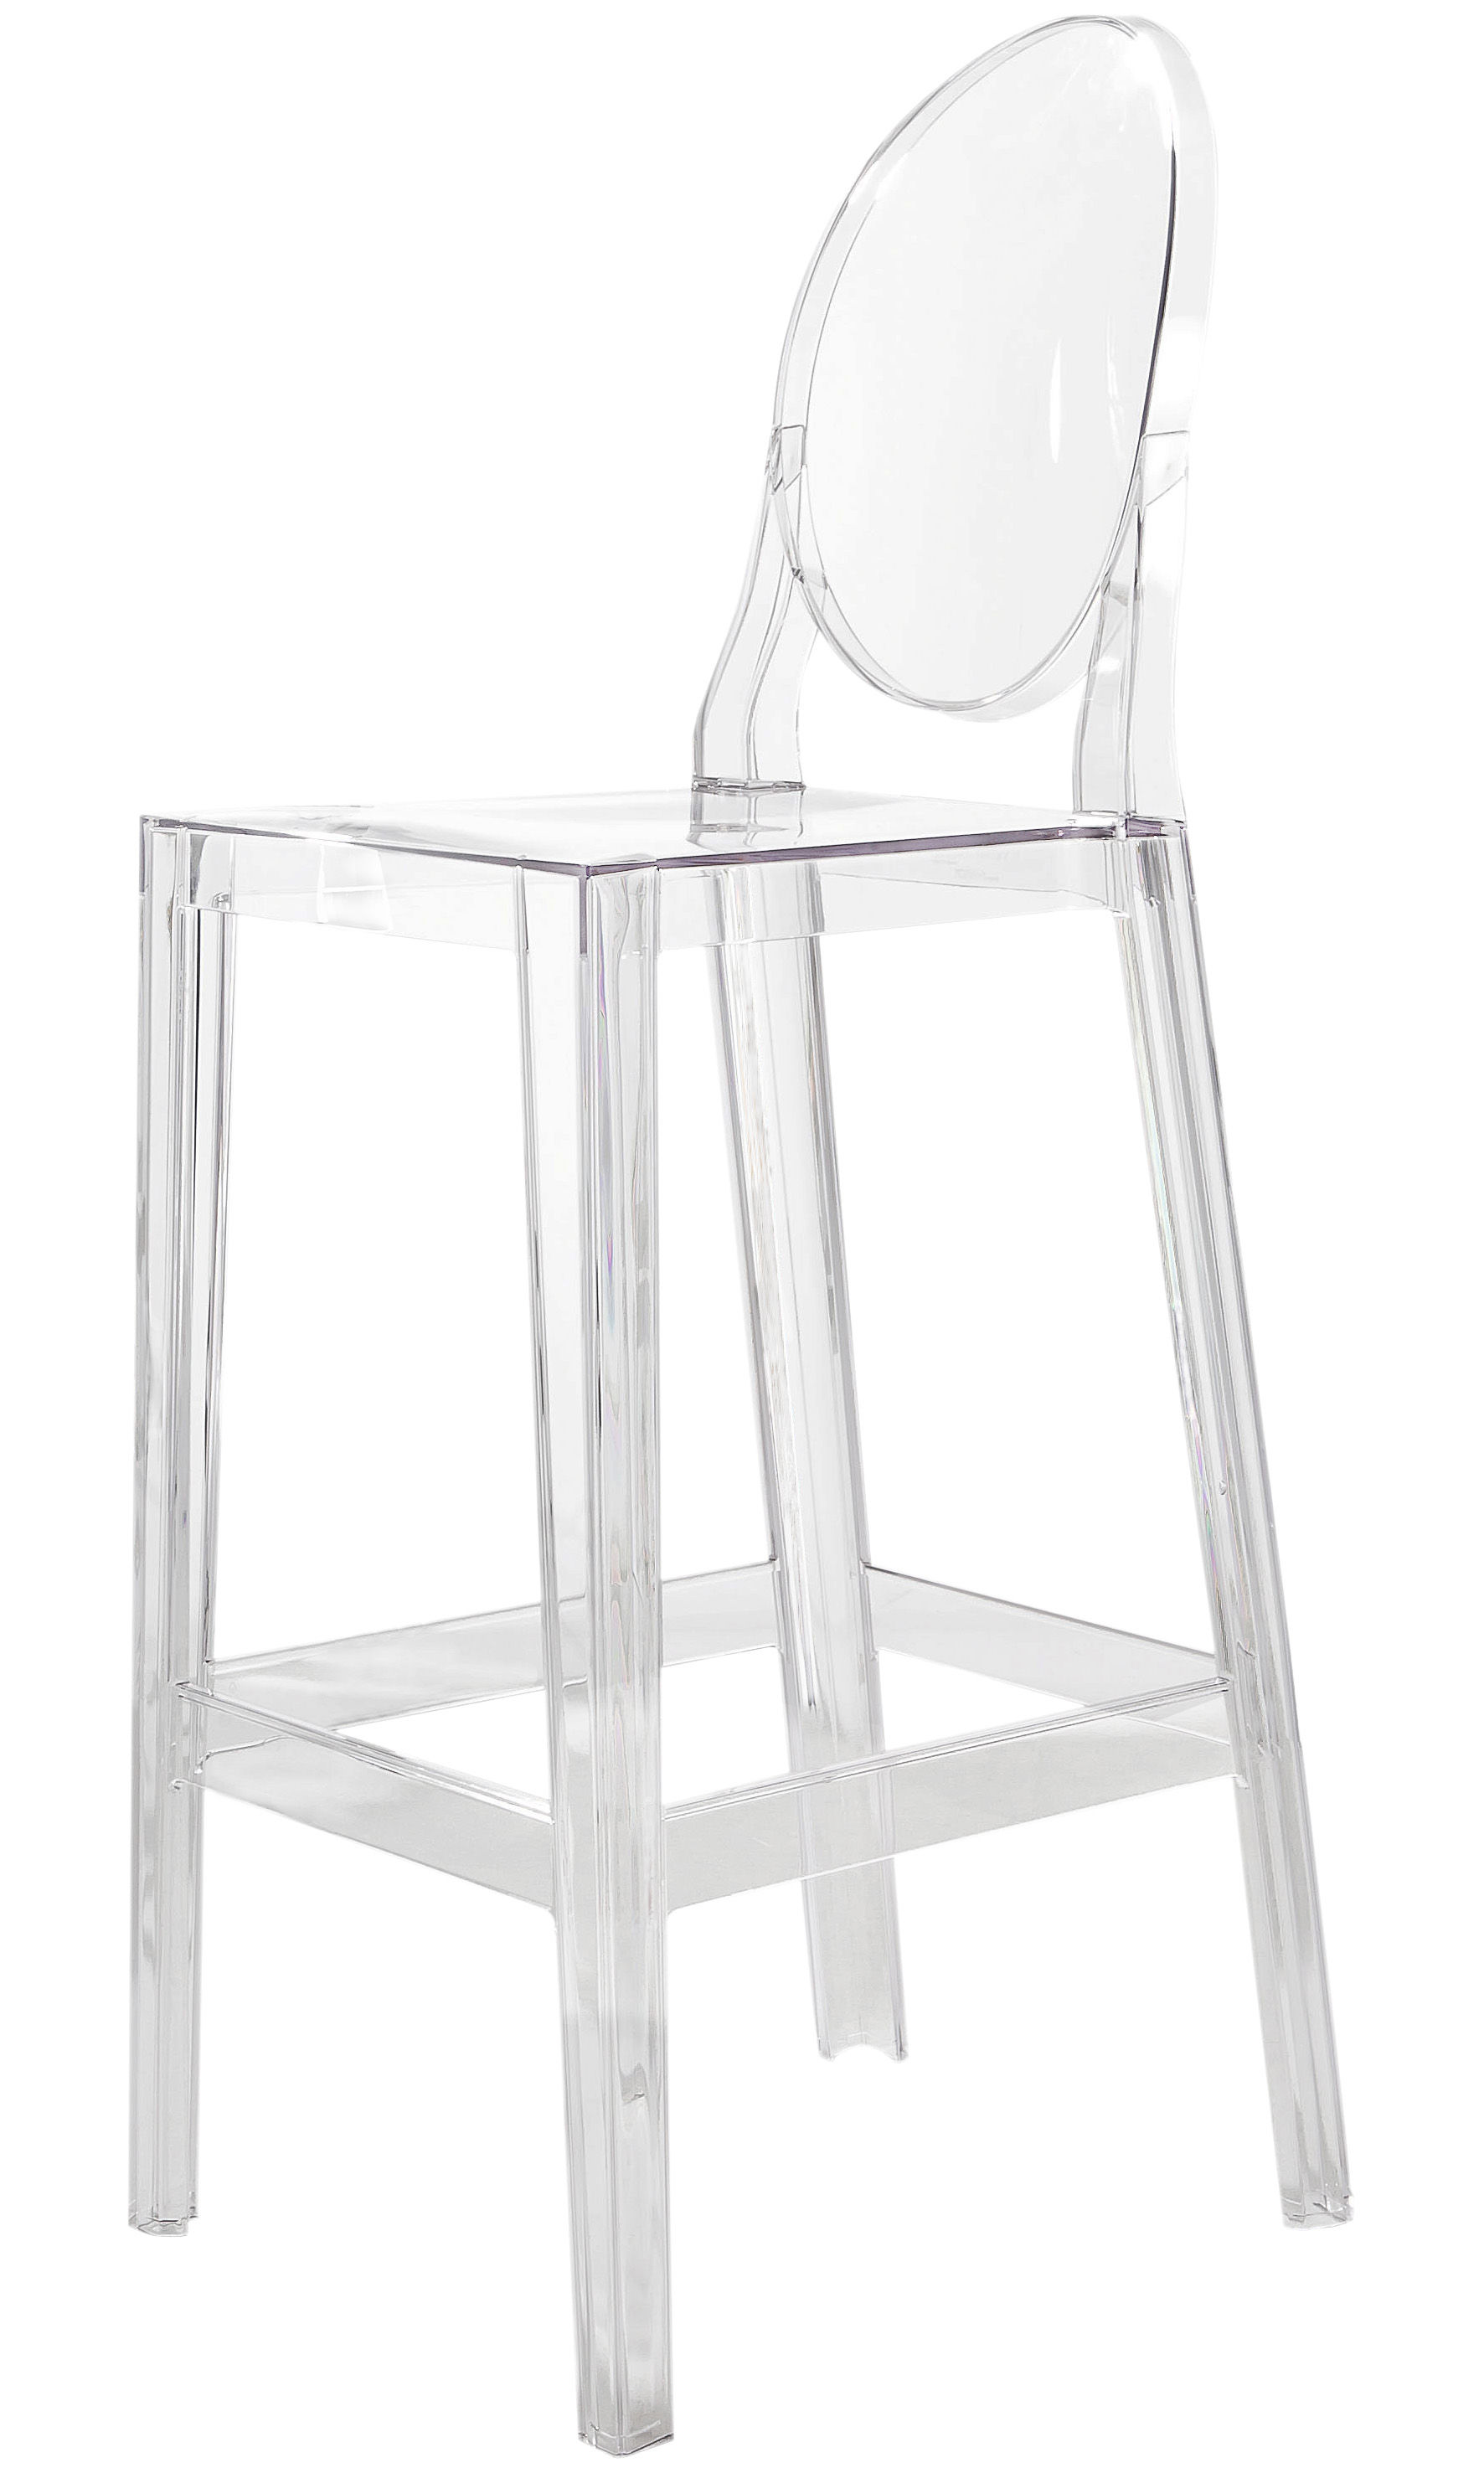 Furniture - Bar Stools - One more Bar chair - H 75cm - Plastic by Kartell - Cristal - Polycarbonate